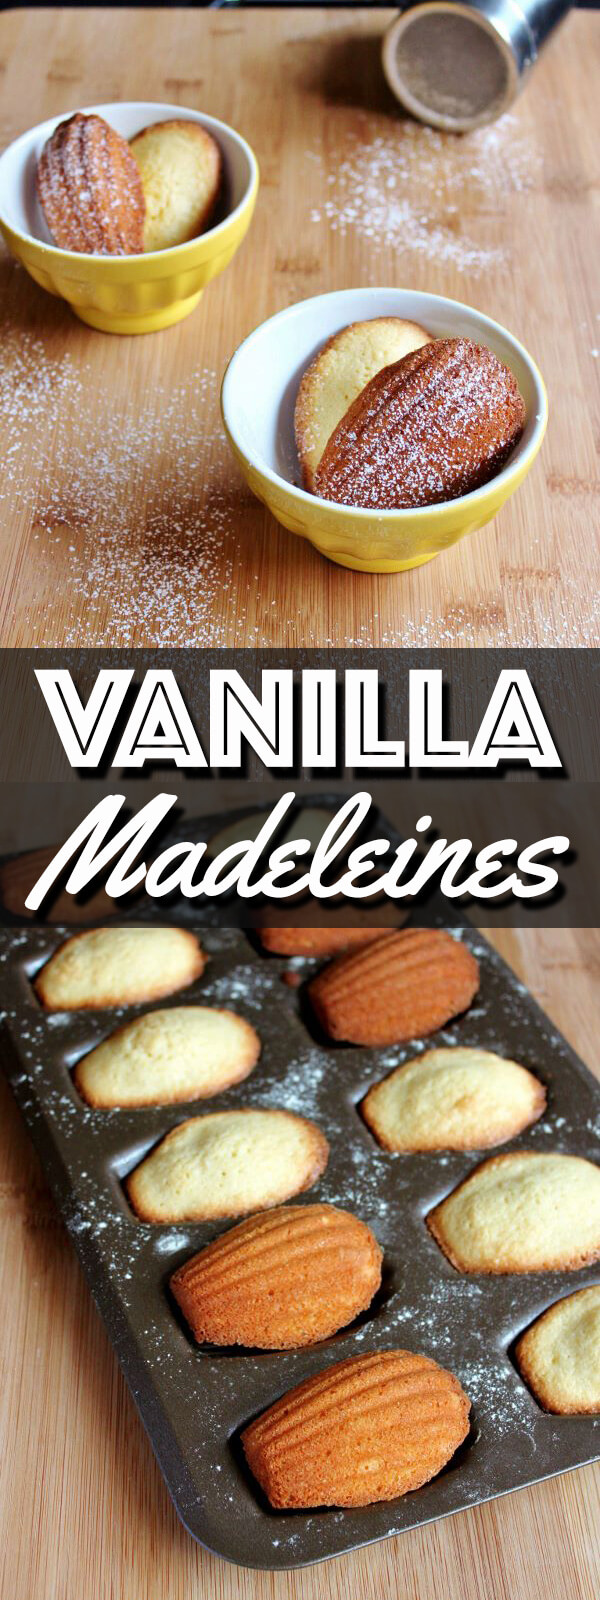 These classic Vanilla Madeleines are buttery and delicious. They make the perfect afternoon snack with tea or the sweetest ending to a meal. | wildwildwhisk.com